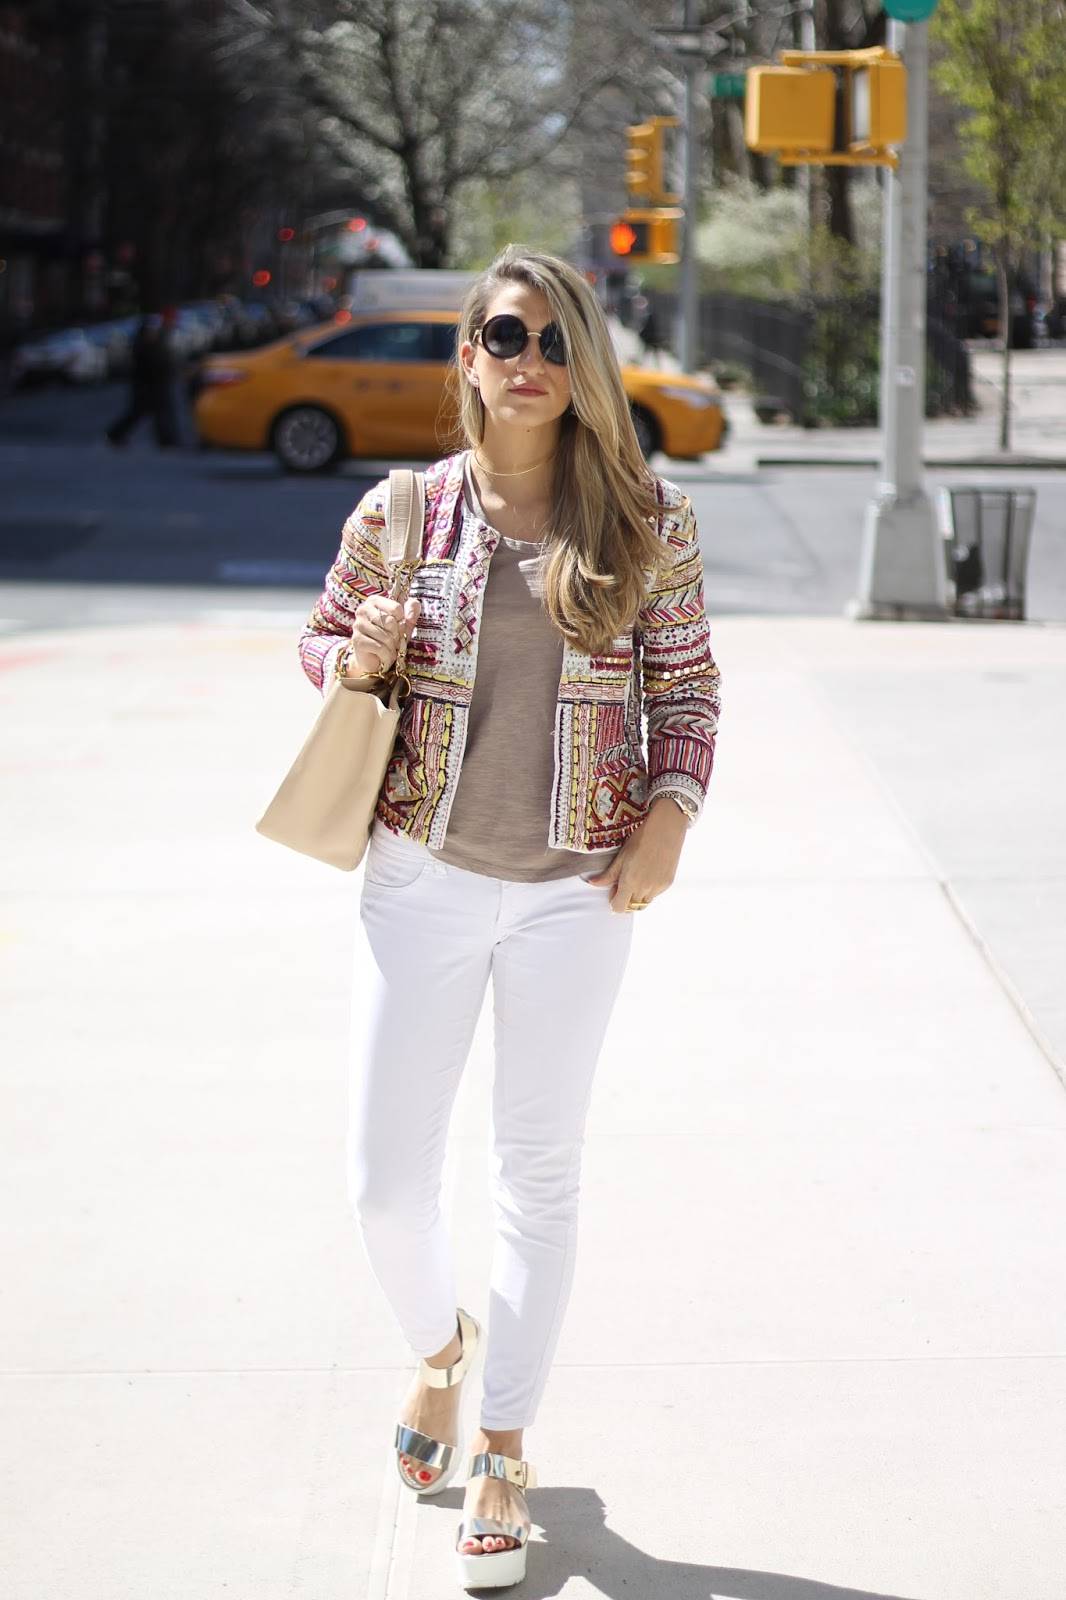 Mango Embroidered Bead Jacket, Siwy Hannah White Skinny Jeans,  Steve Madden Gold Surfside Platform Sandals,  Chanel Beige Shopper Tote,  Le Specs Ziggy Round Sunglasses